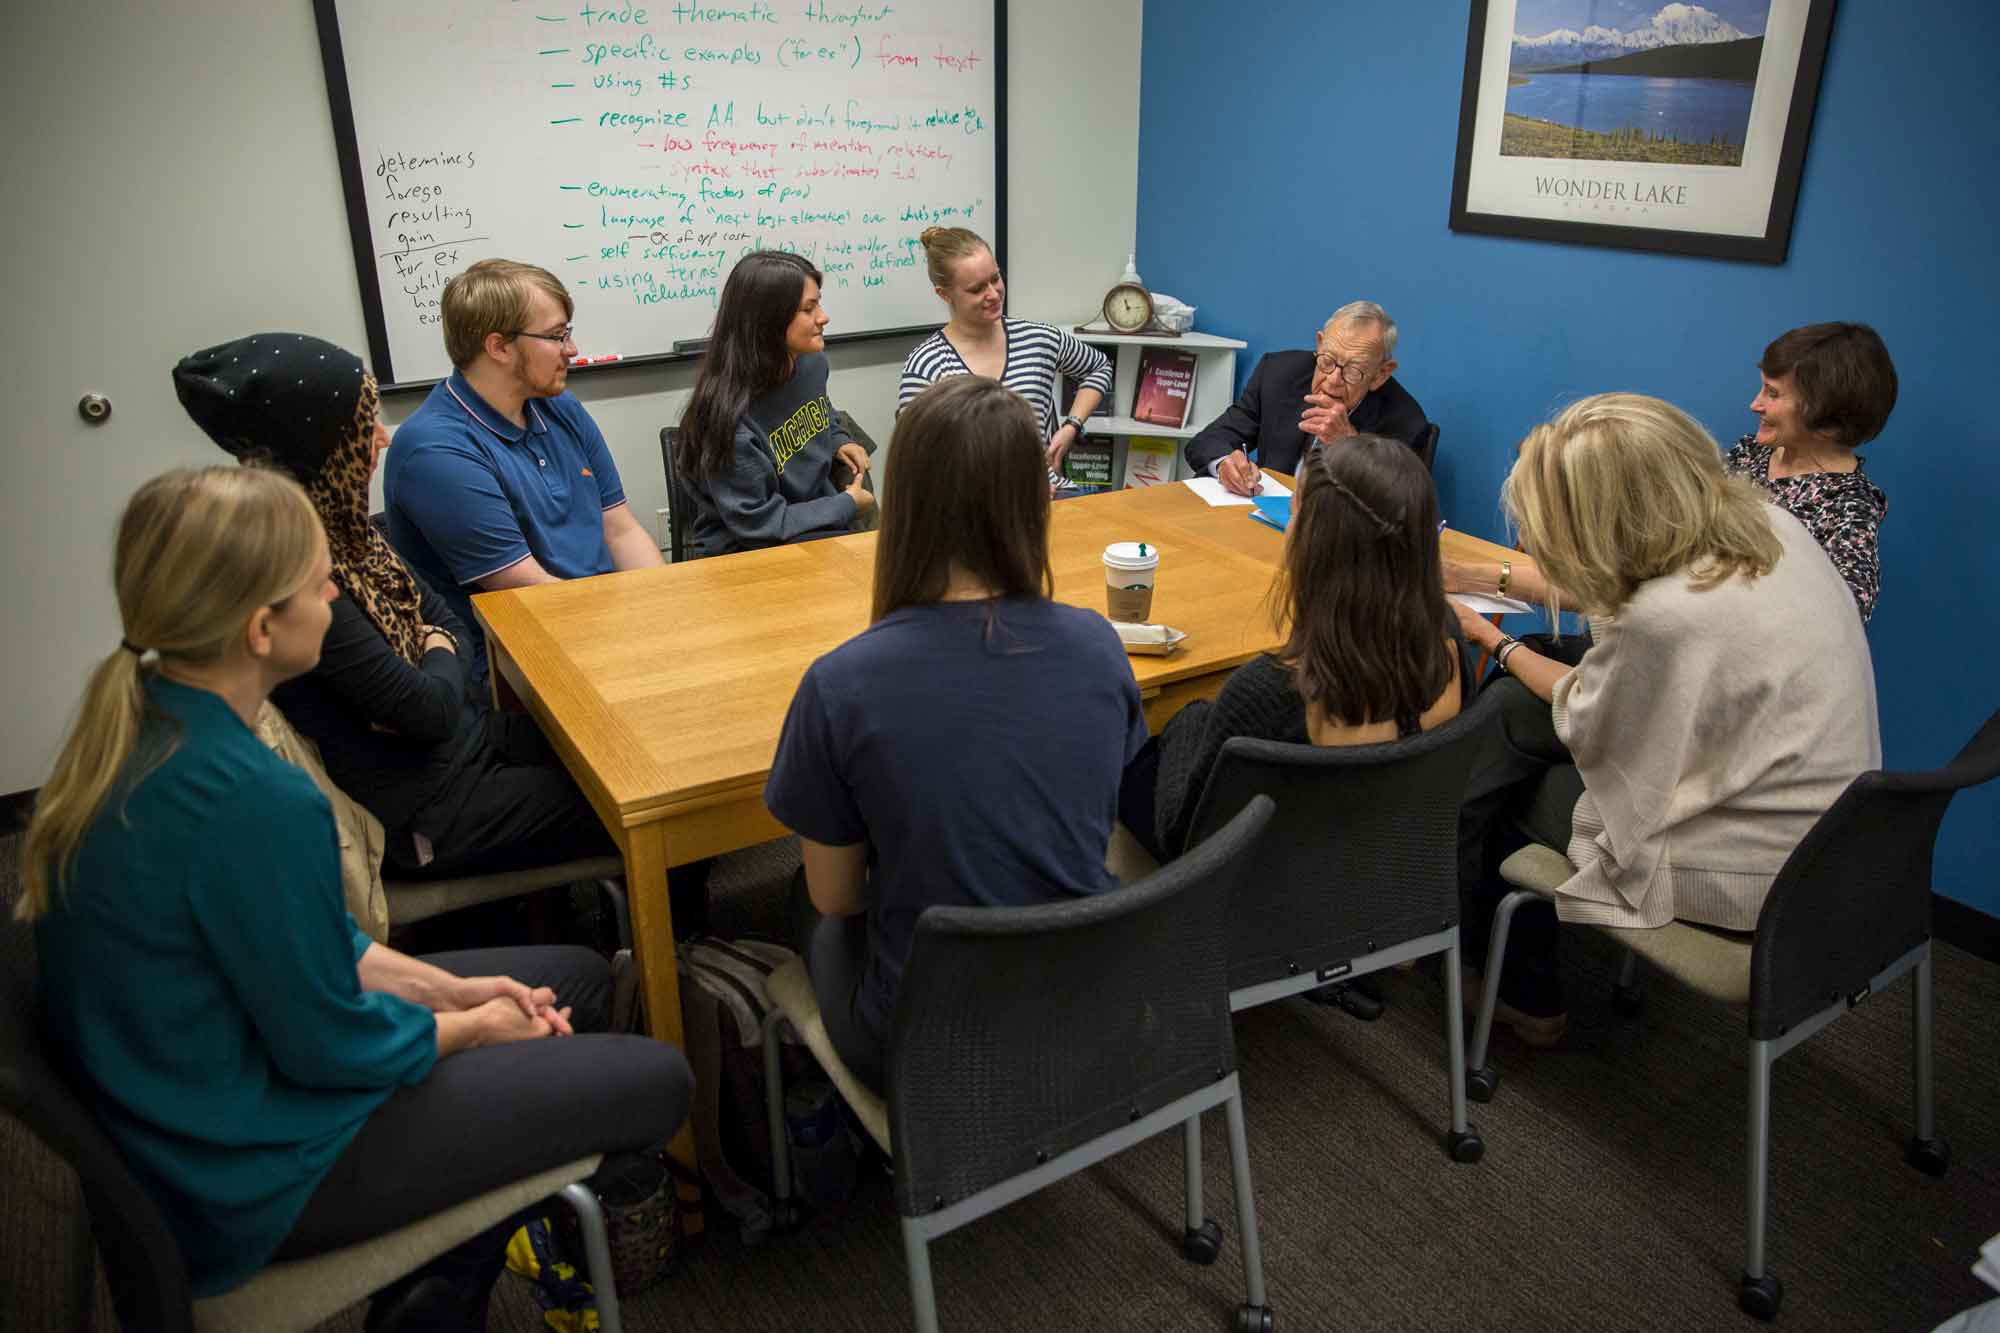 Writing fellows from the Sweetland Center for Writing discuss the M-Write tool with John W. Sweetland. The corporate leader and former business owner shared with students the importance of writing across professions, which is the basis of the center's work and is what spurred the M-Write program.